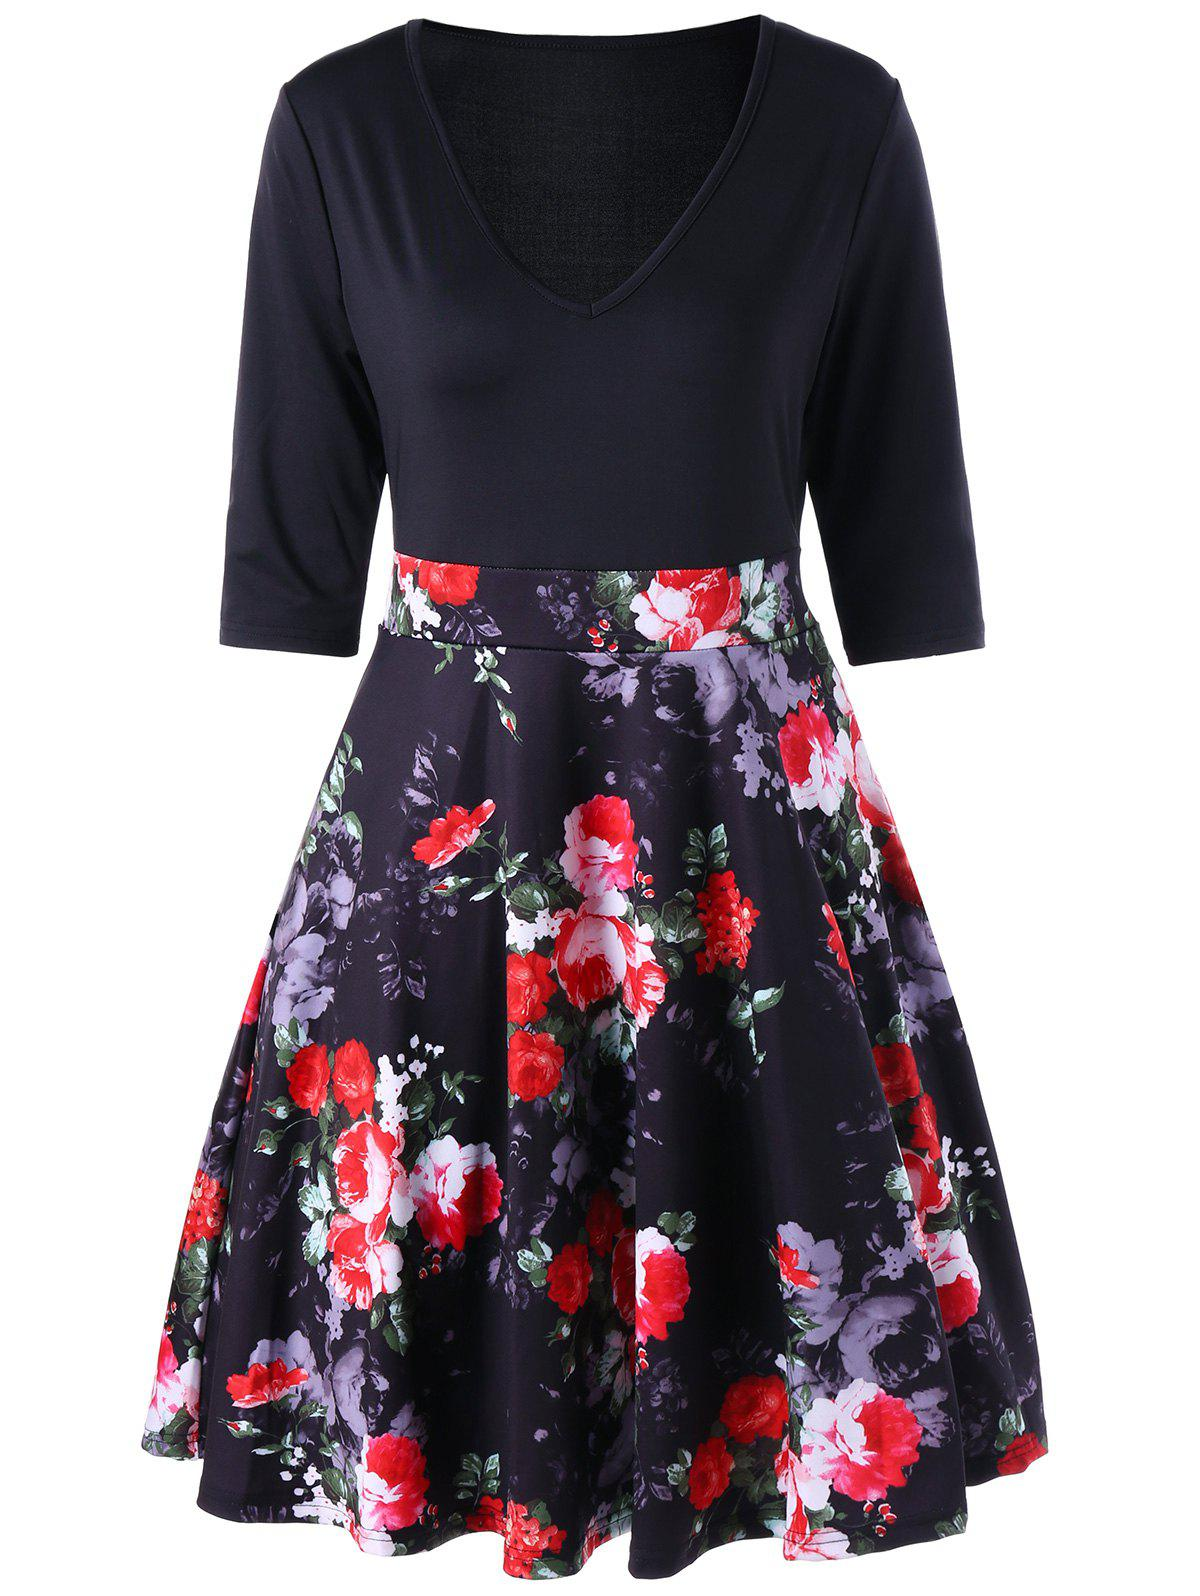 Floral V Neck High Waist A Line Dress - BLACK 2XL